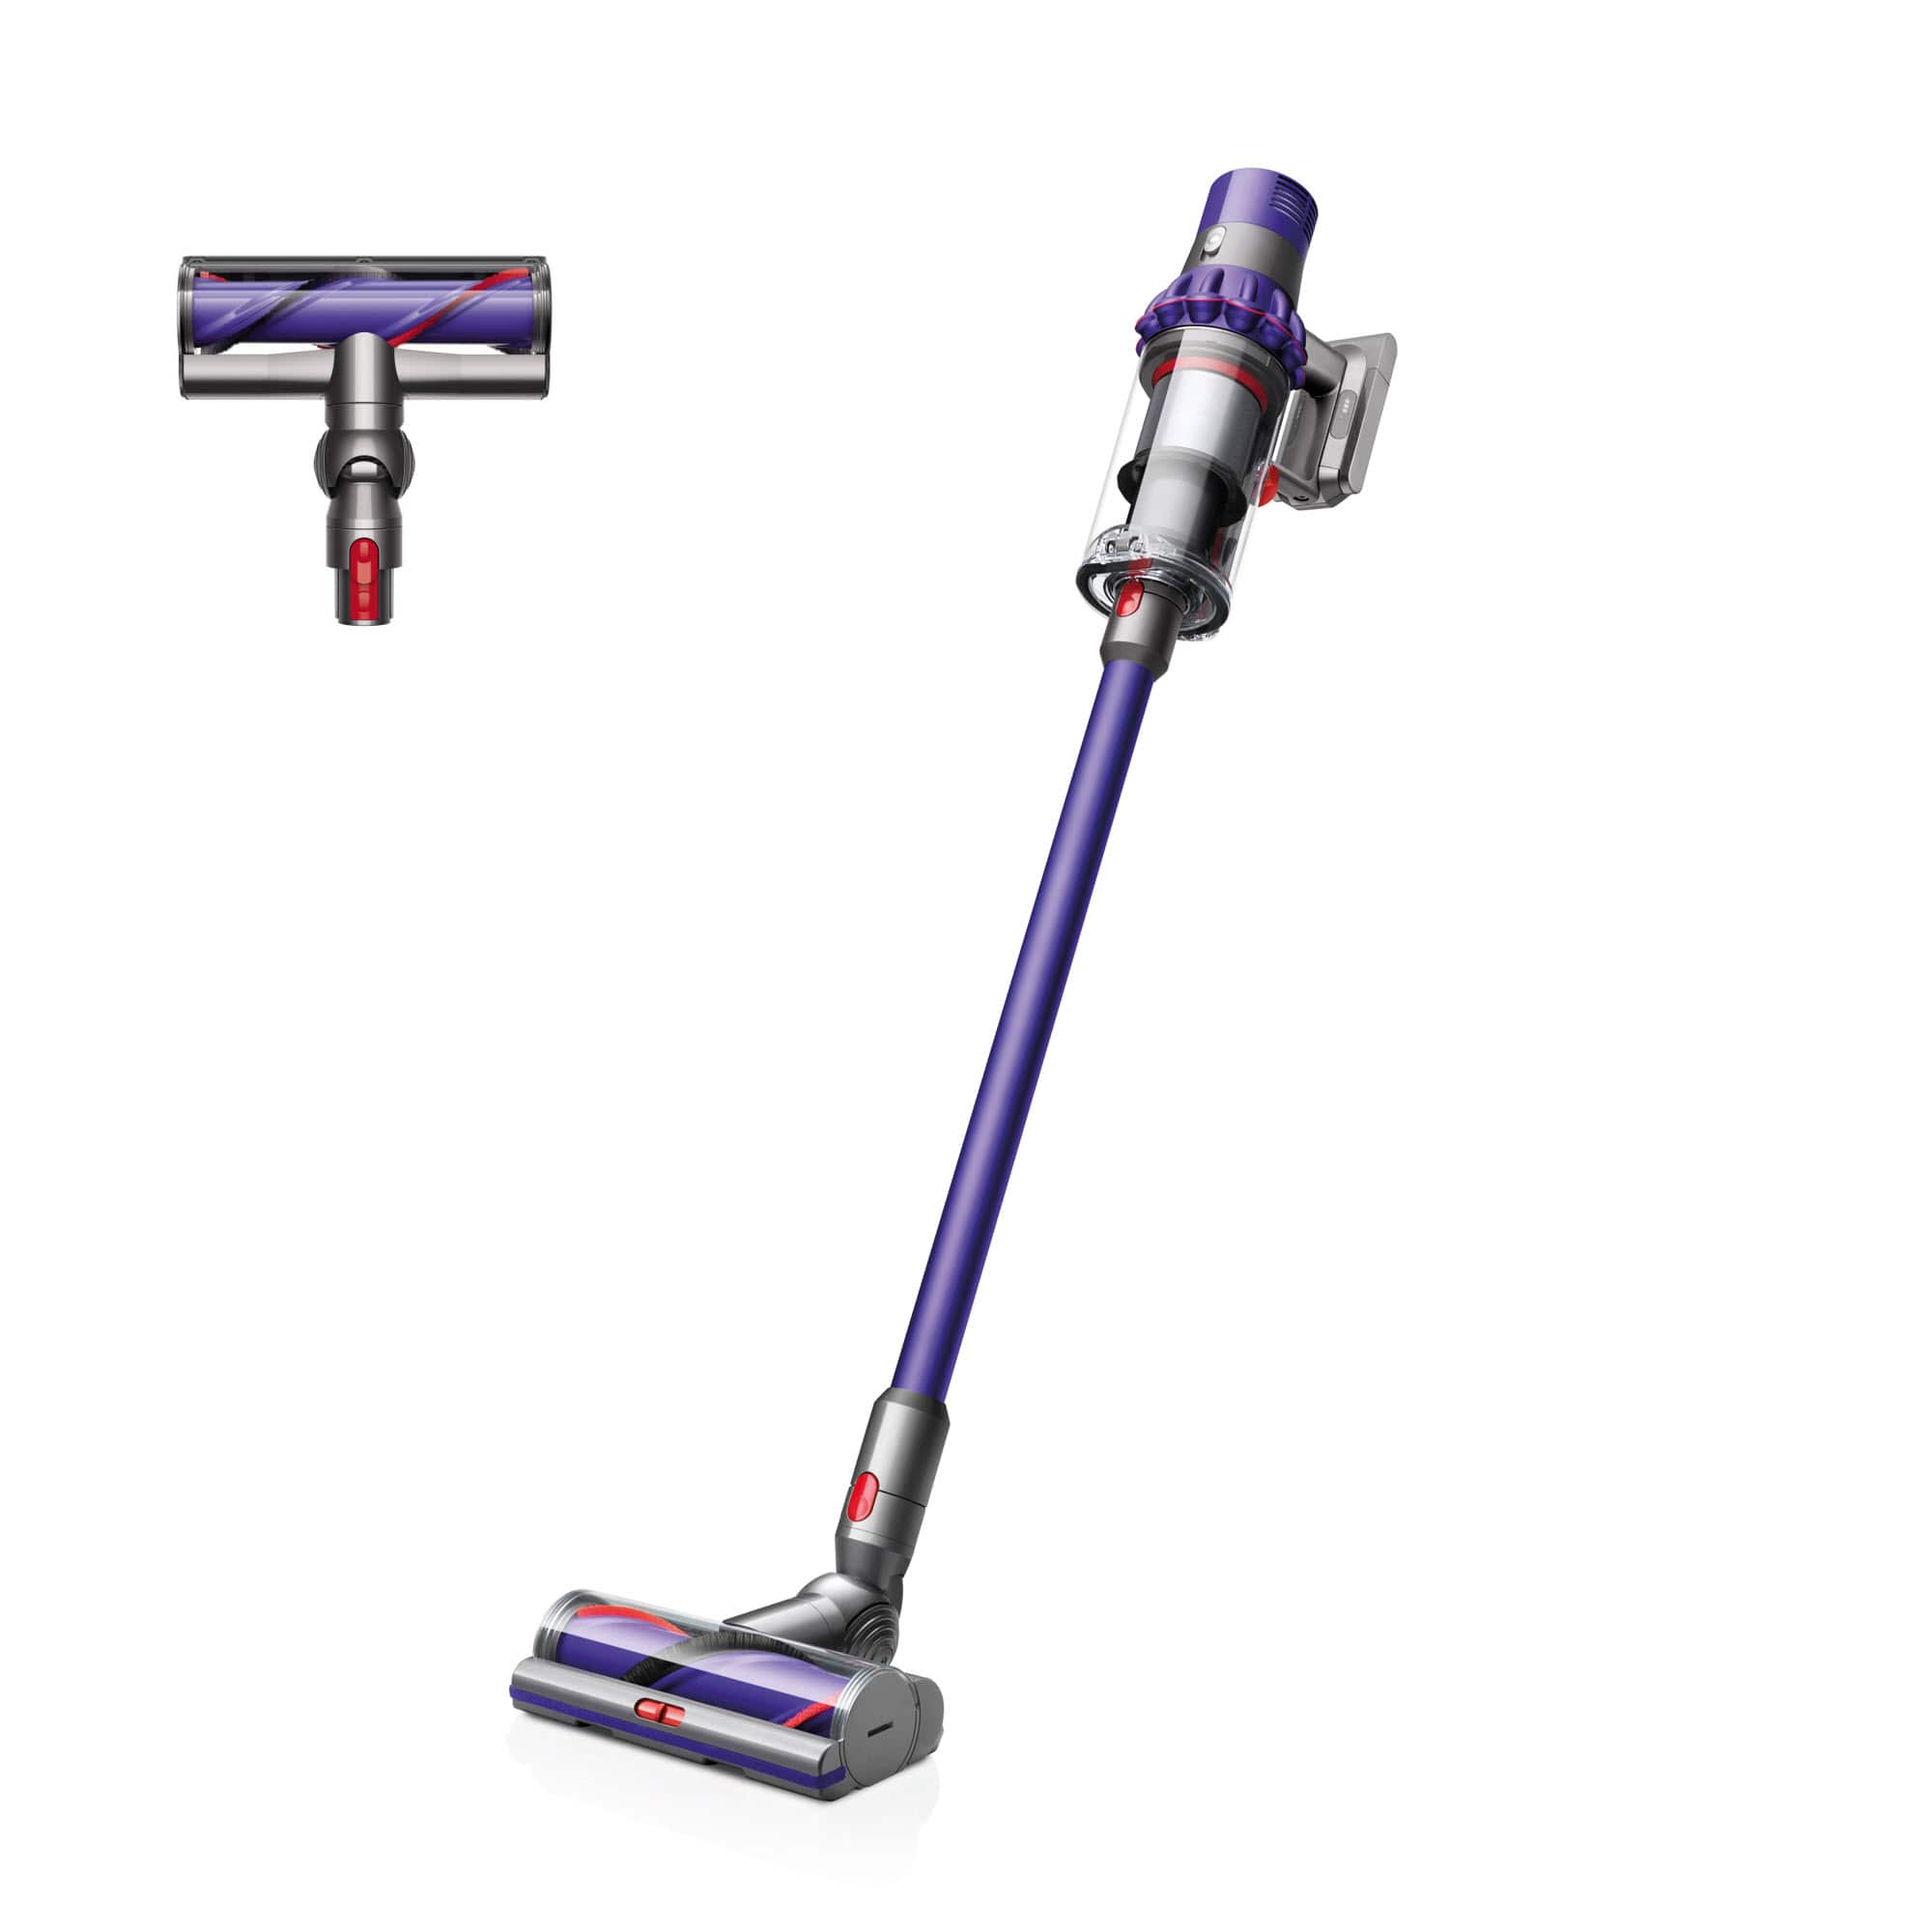 Dyson V10 Animal Cordless Vacuum Cleaner Refurbished $259 and more